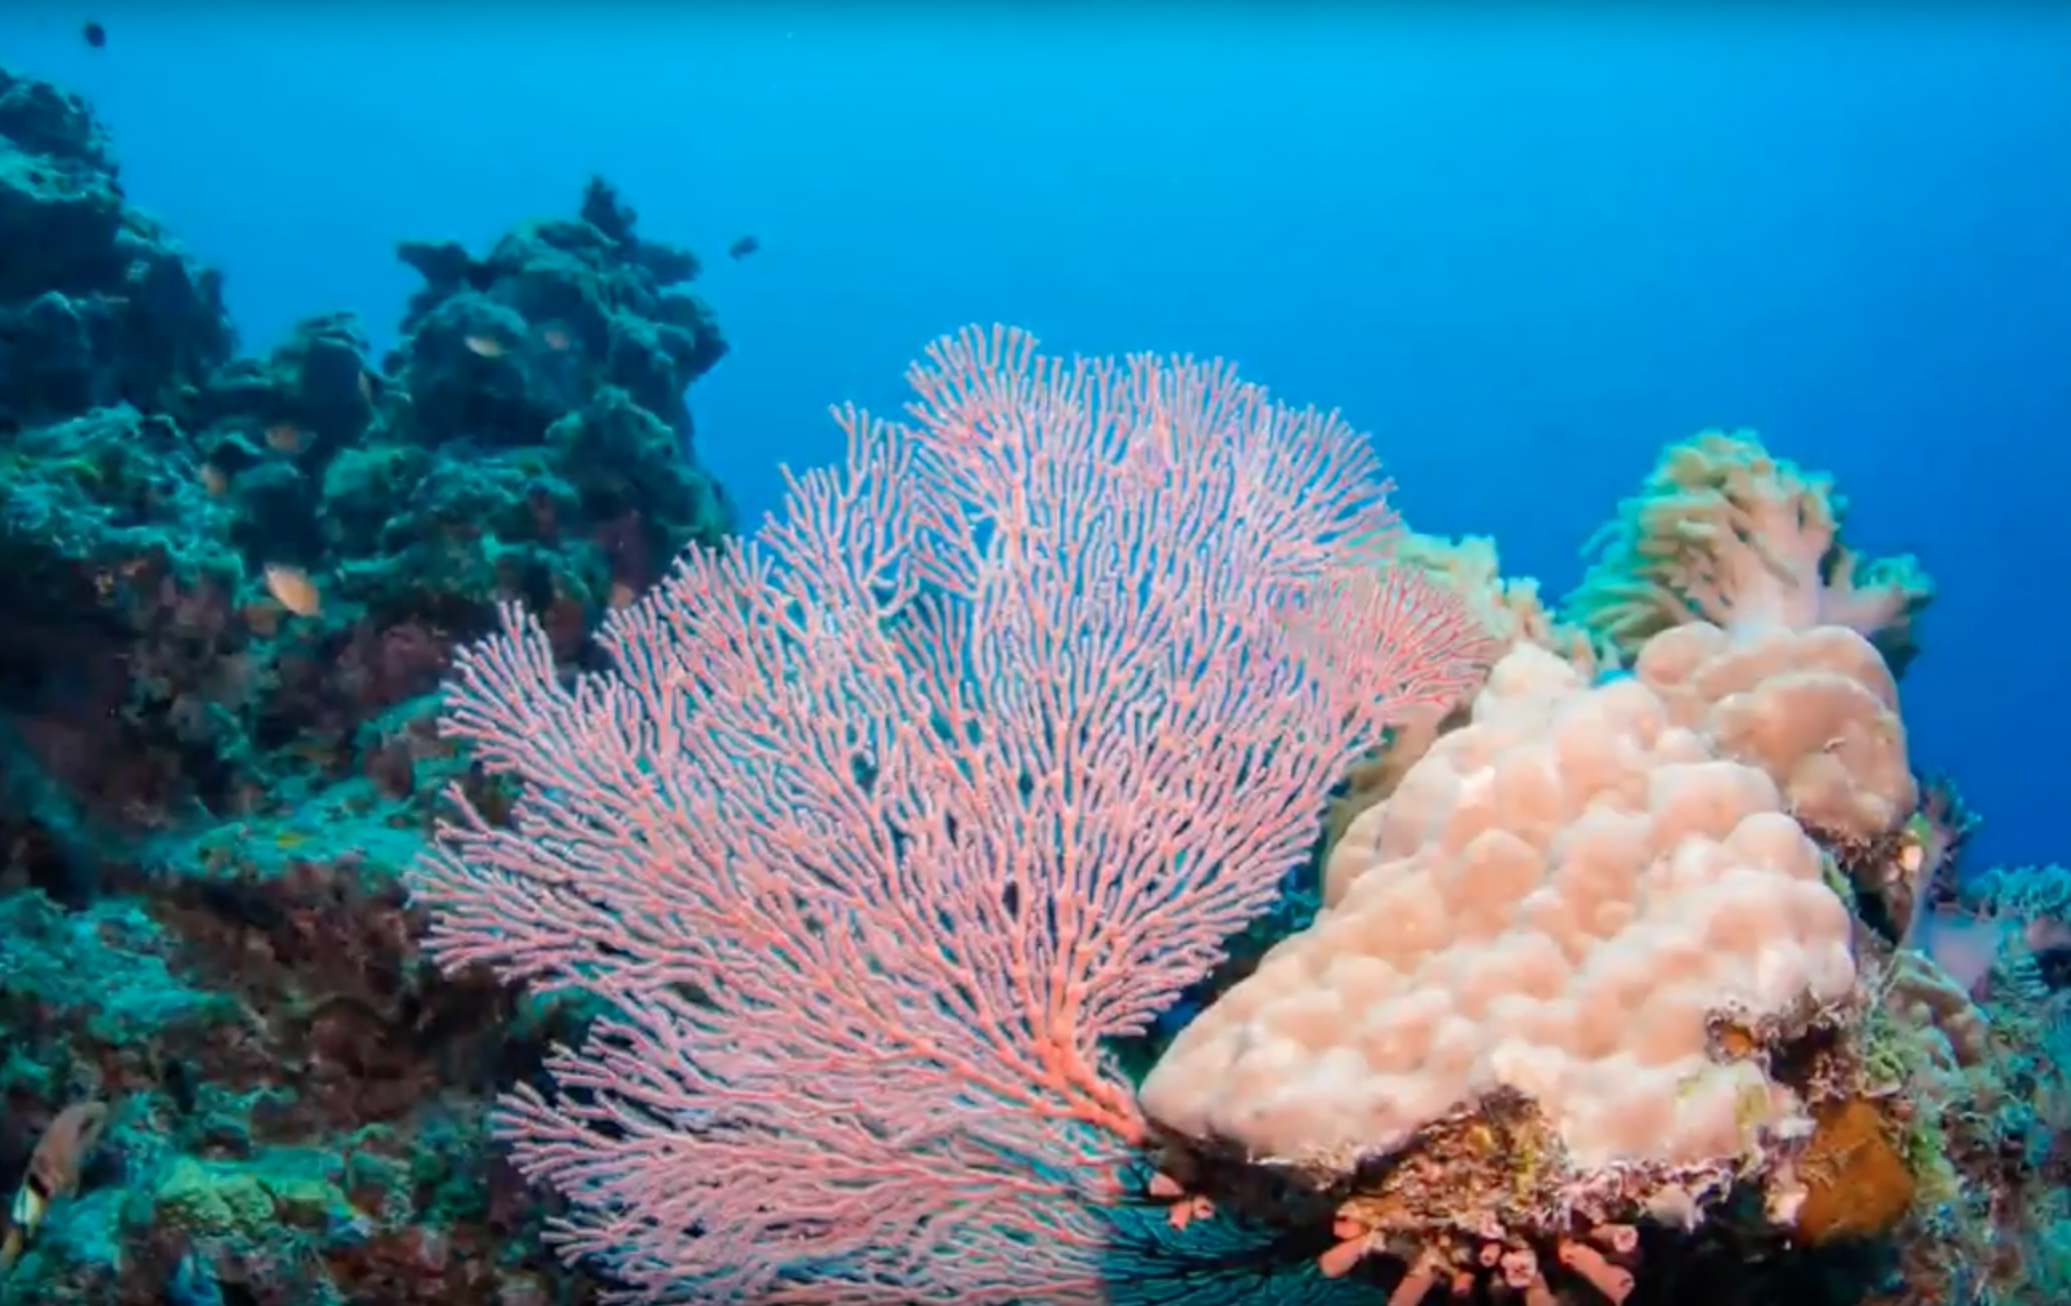 Our favourite time of year on the Great Barrier Reef